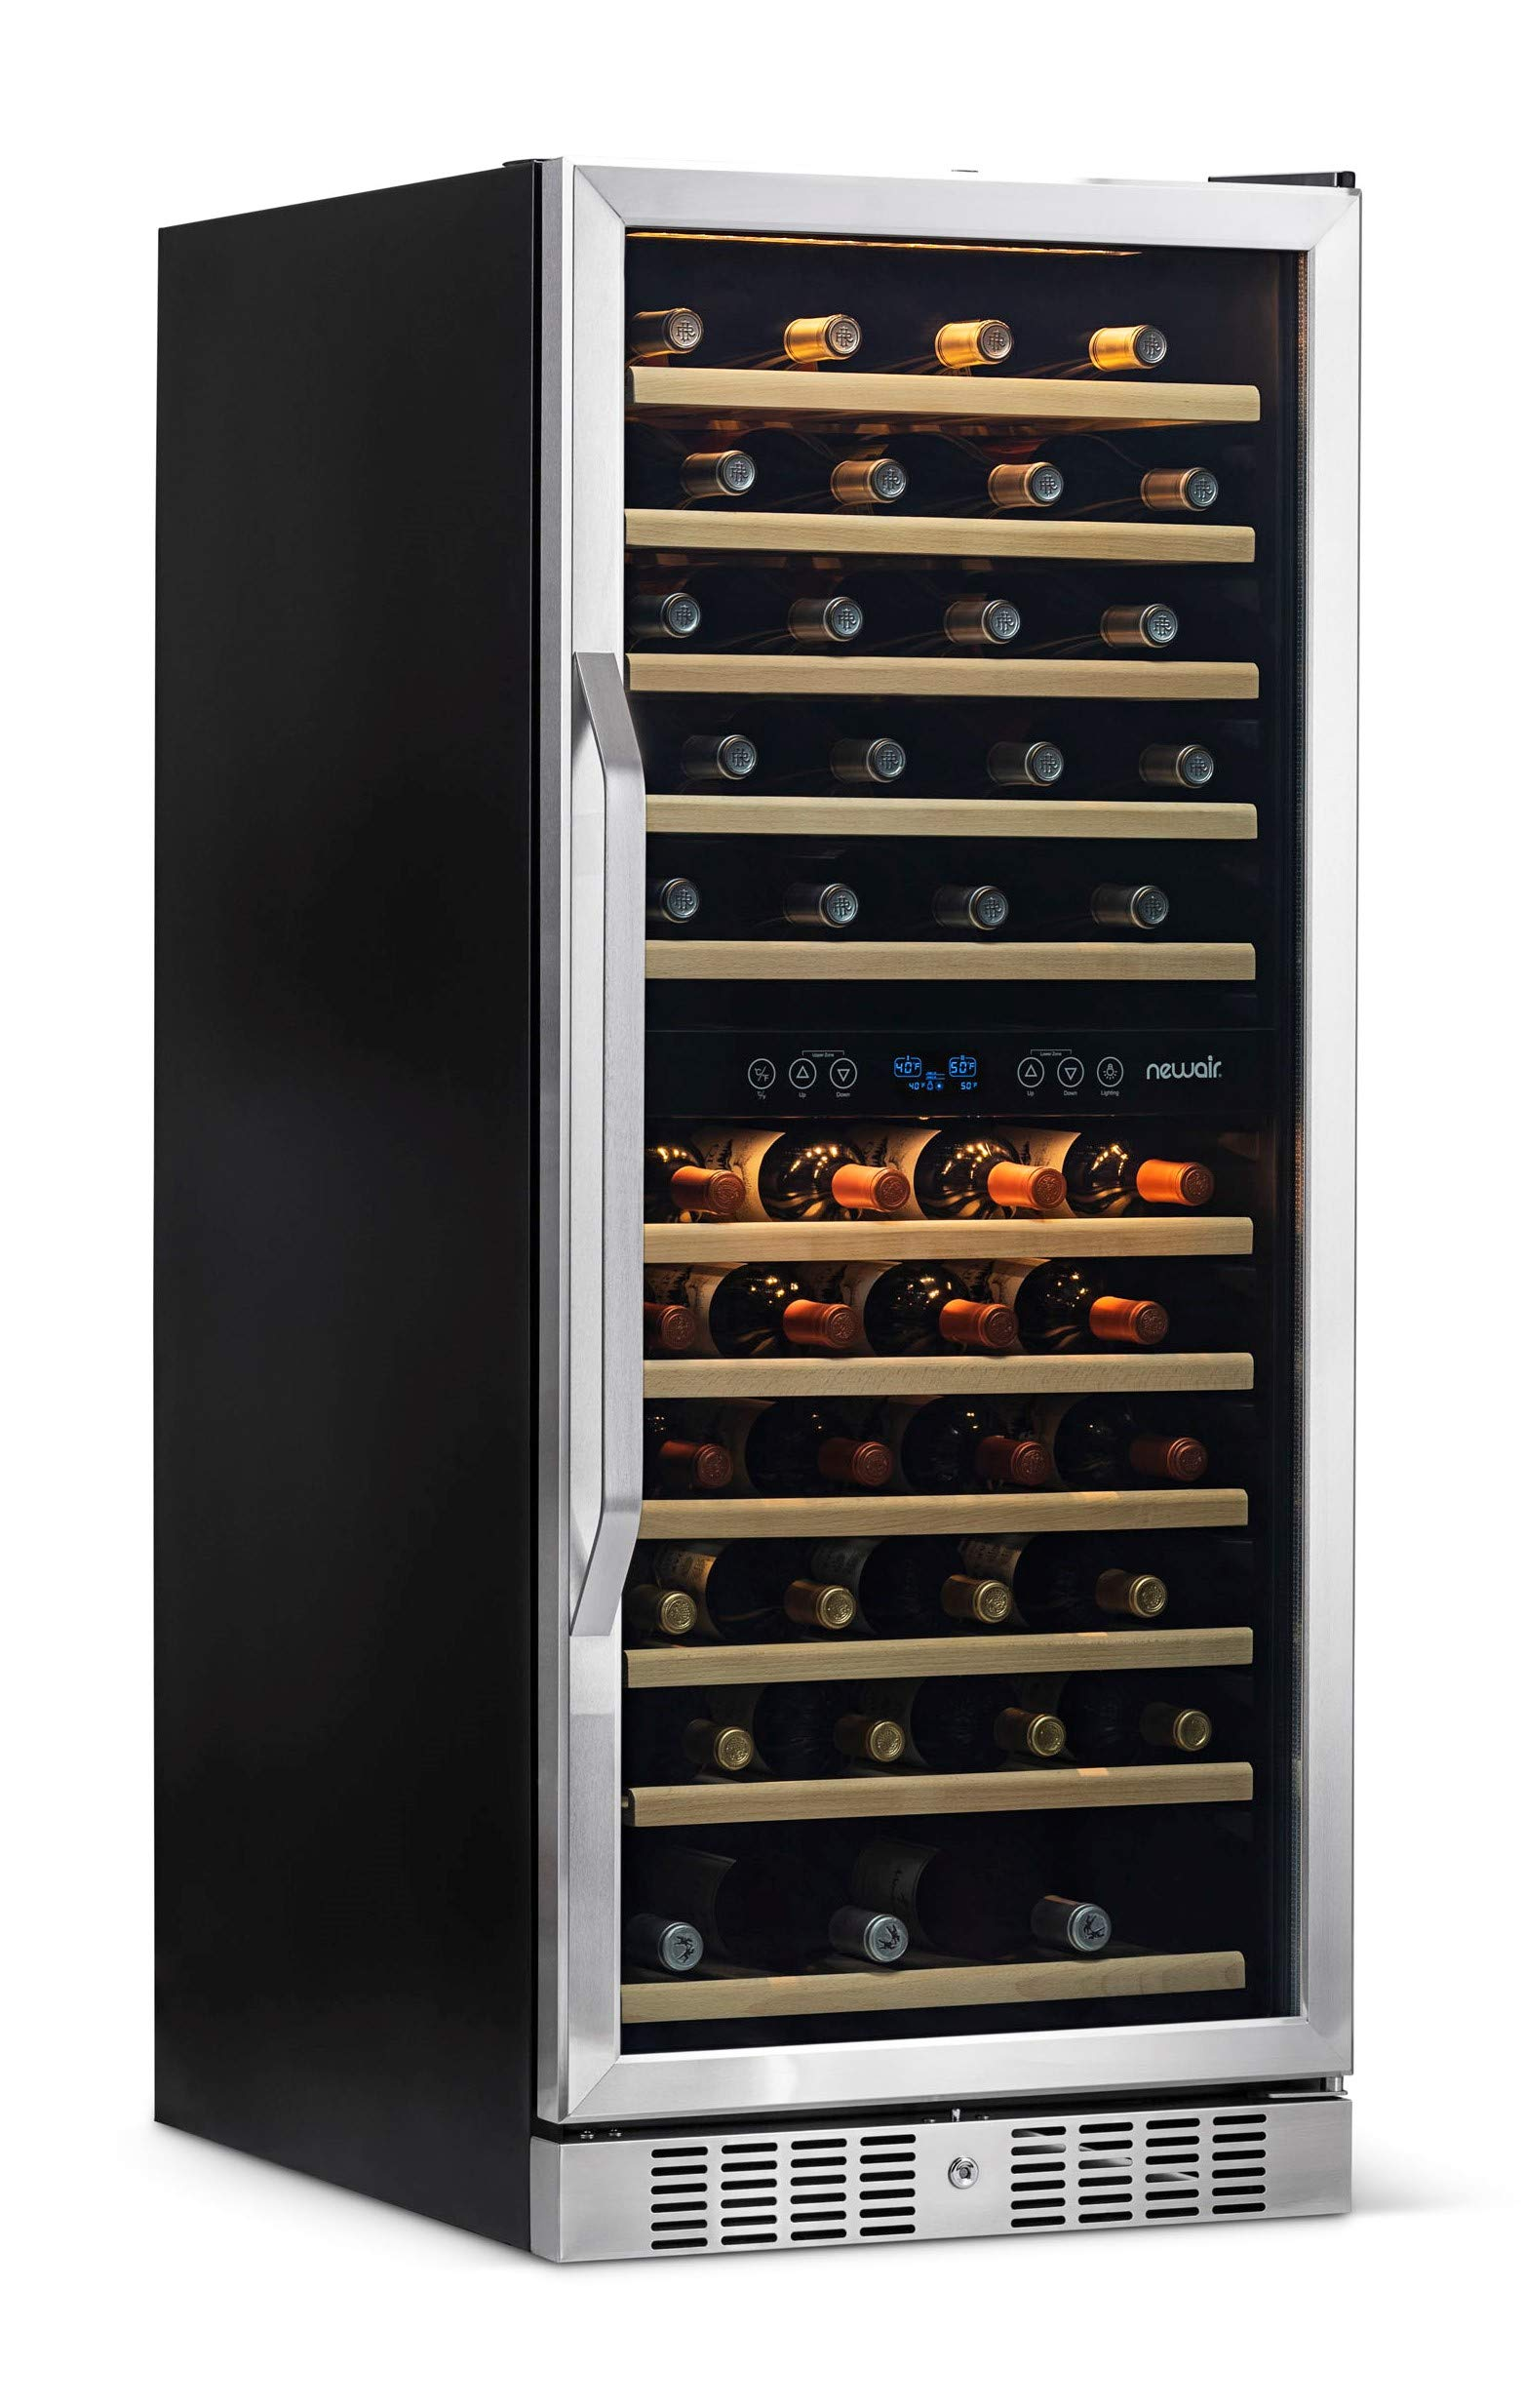 NewAir AWR-1160DB Wine Cooler, 116 Bottle, Stainless Steel/Black by NewAir